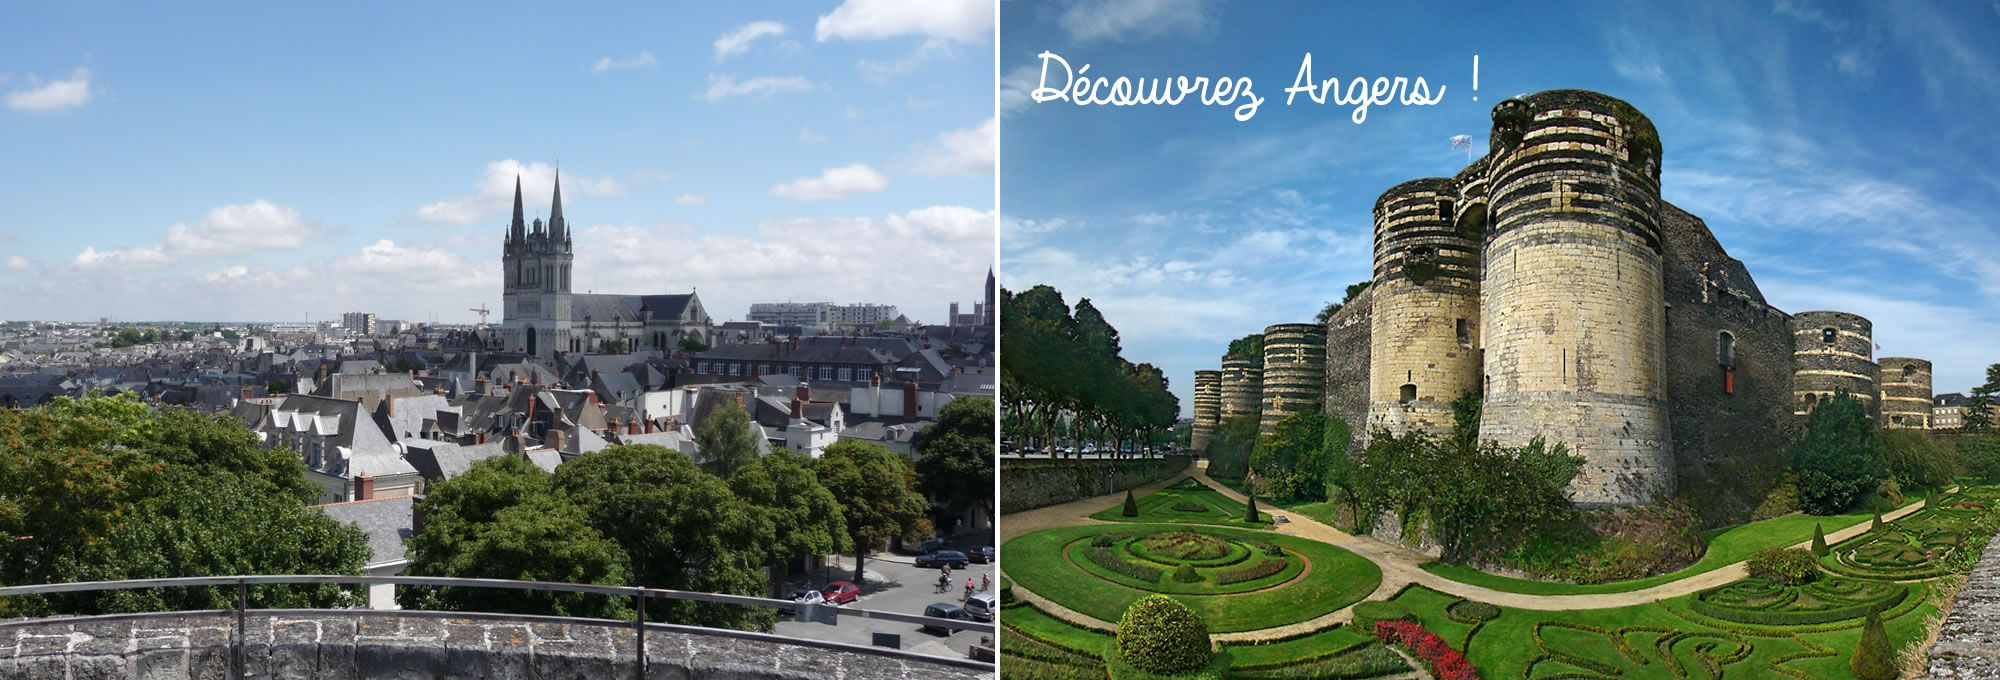 Tourism in Angers